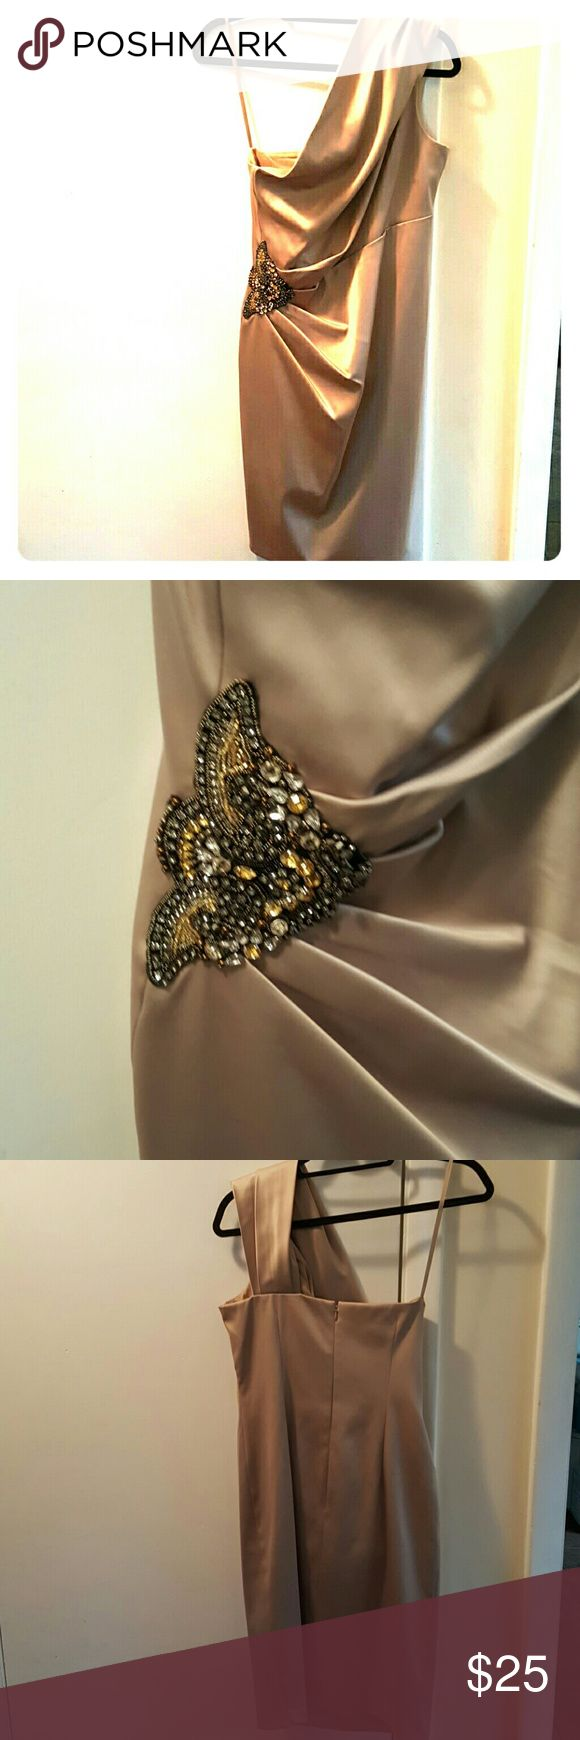 Gold one  strap dress Form fitting gold dress with beautiful jeweled gathered  detail Eliza J Dresses One Shoulder